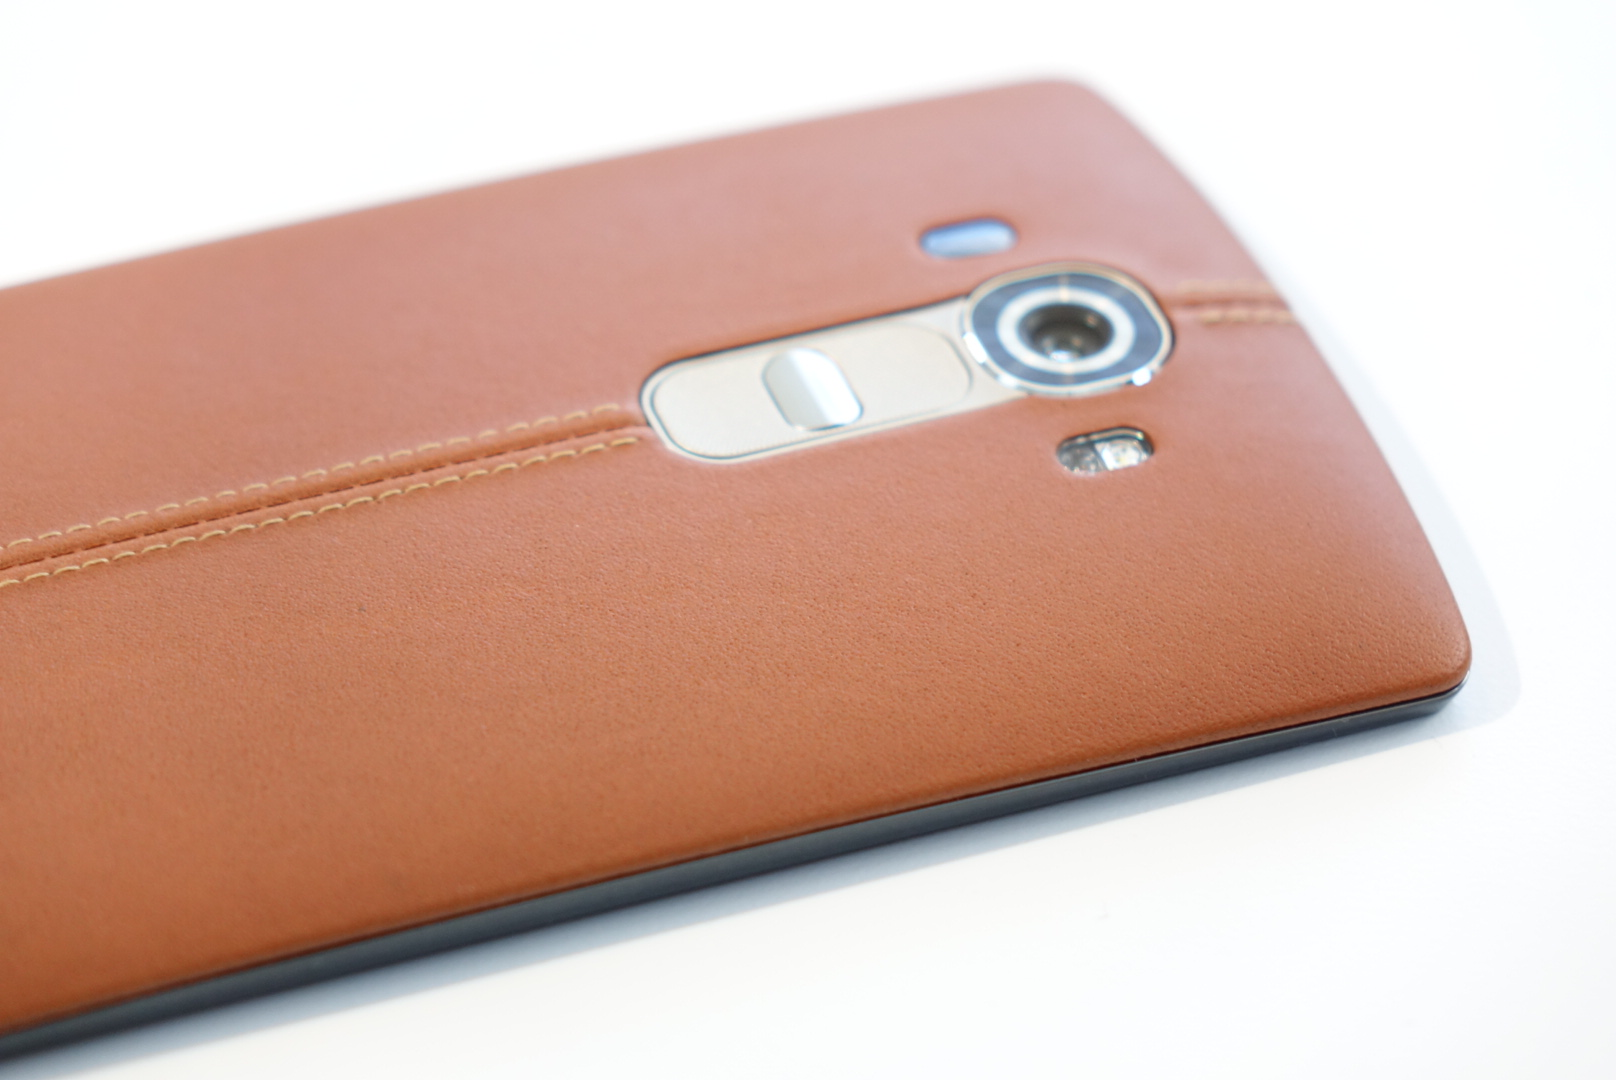 AT&T Finally Pushes Marshmallow To The LG G4